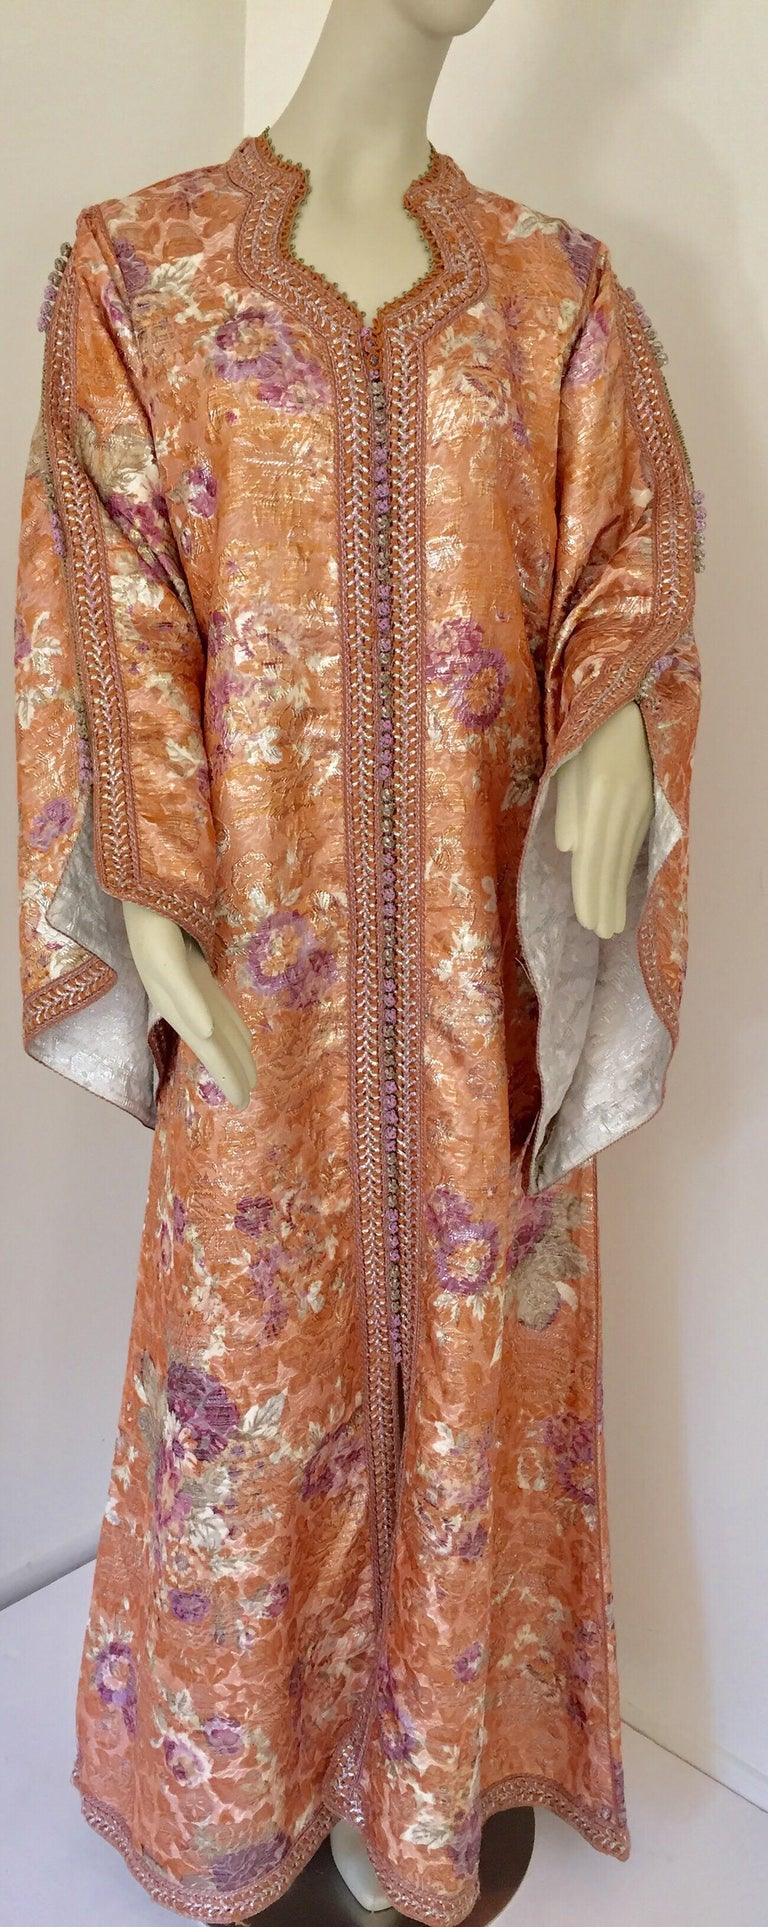 Moroccan Kaftan Orange and Purple Floral with Gold Embroidered Maxi Dress Caftan For Sale 3